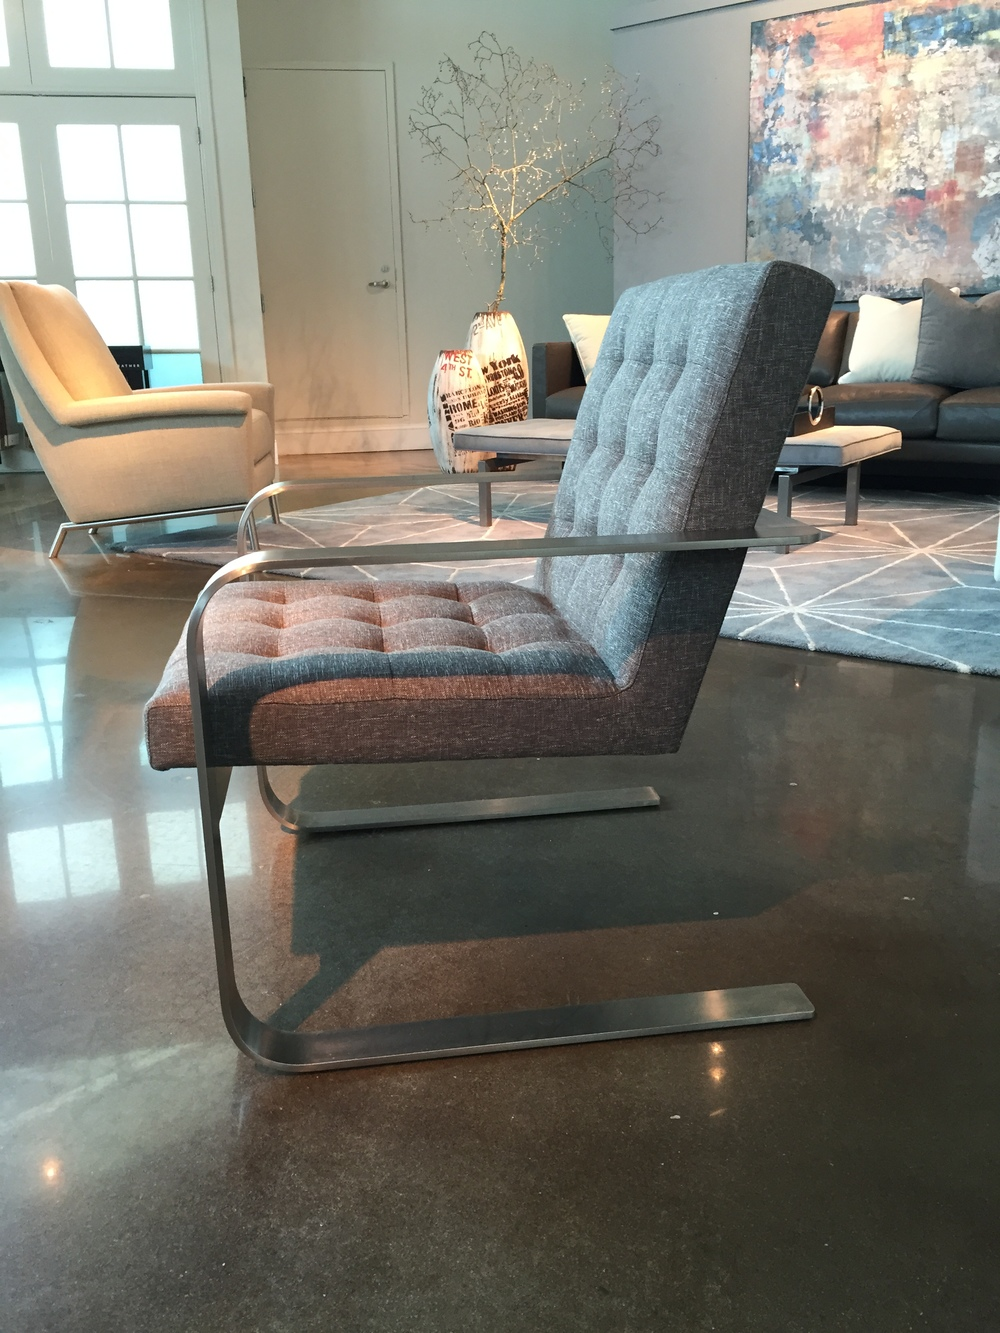 The Beck Chair is extremely comfortable and eternally beautiful! American Leather offers this iconic form in a broad range of leathers, suedes, and fabrics.